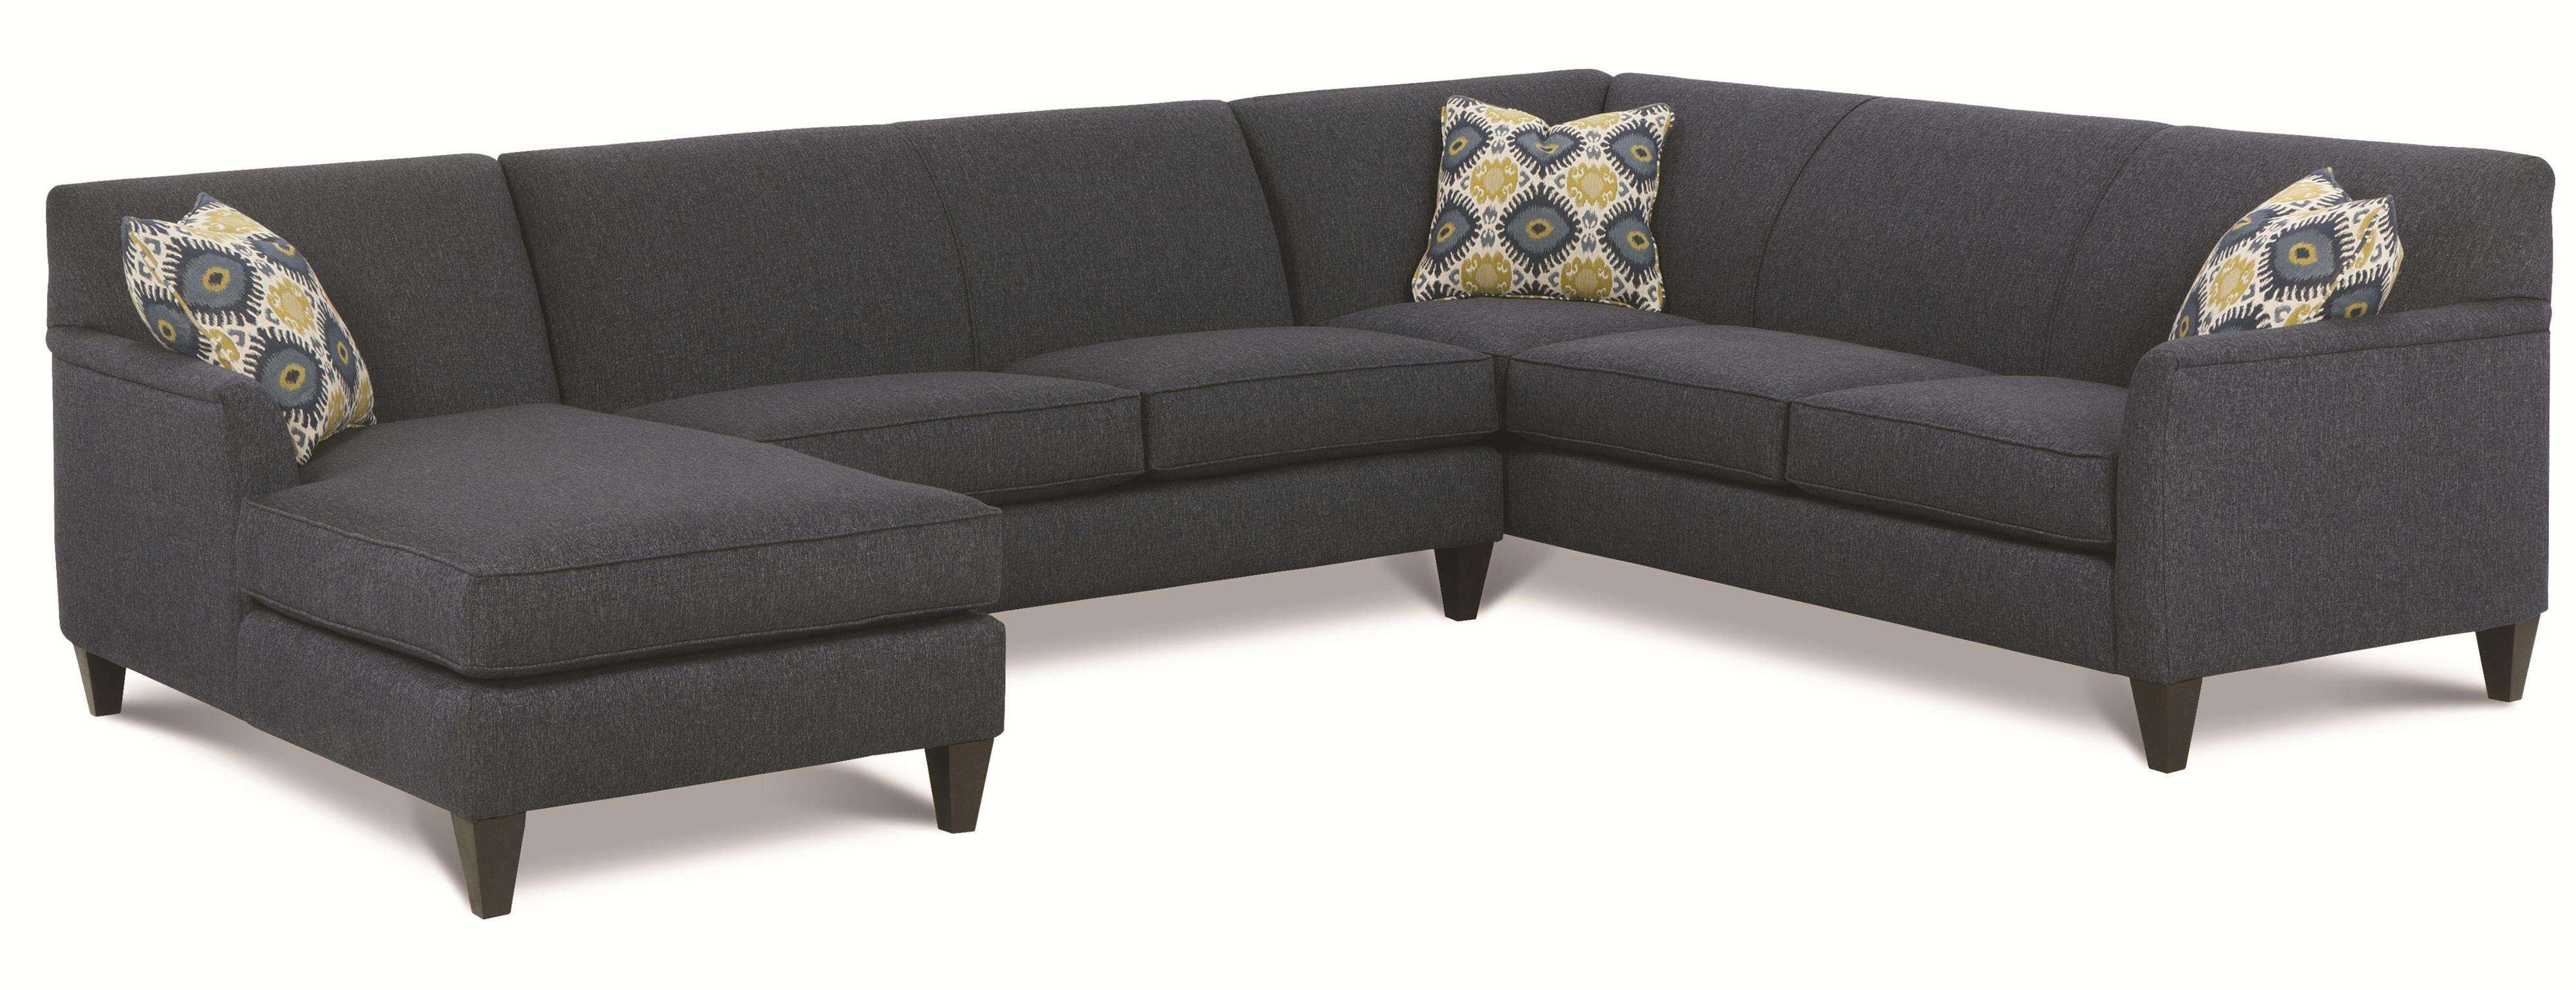 Aquarius Dark Grey 2 Piece Sectionals With Raf Chaise Inside Well Known Simple 25 2 Piece Sectionals With Chaise Awesome (View 12 of 20)